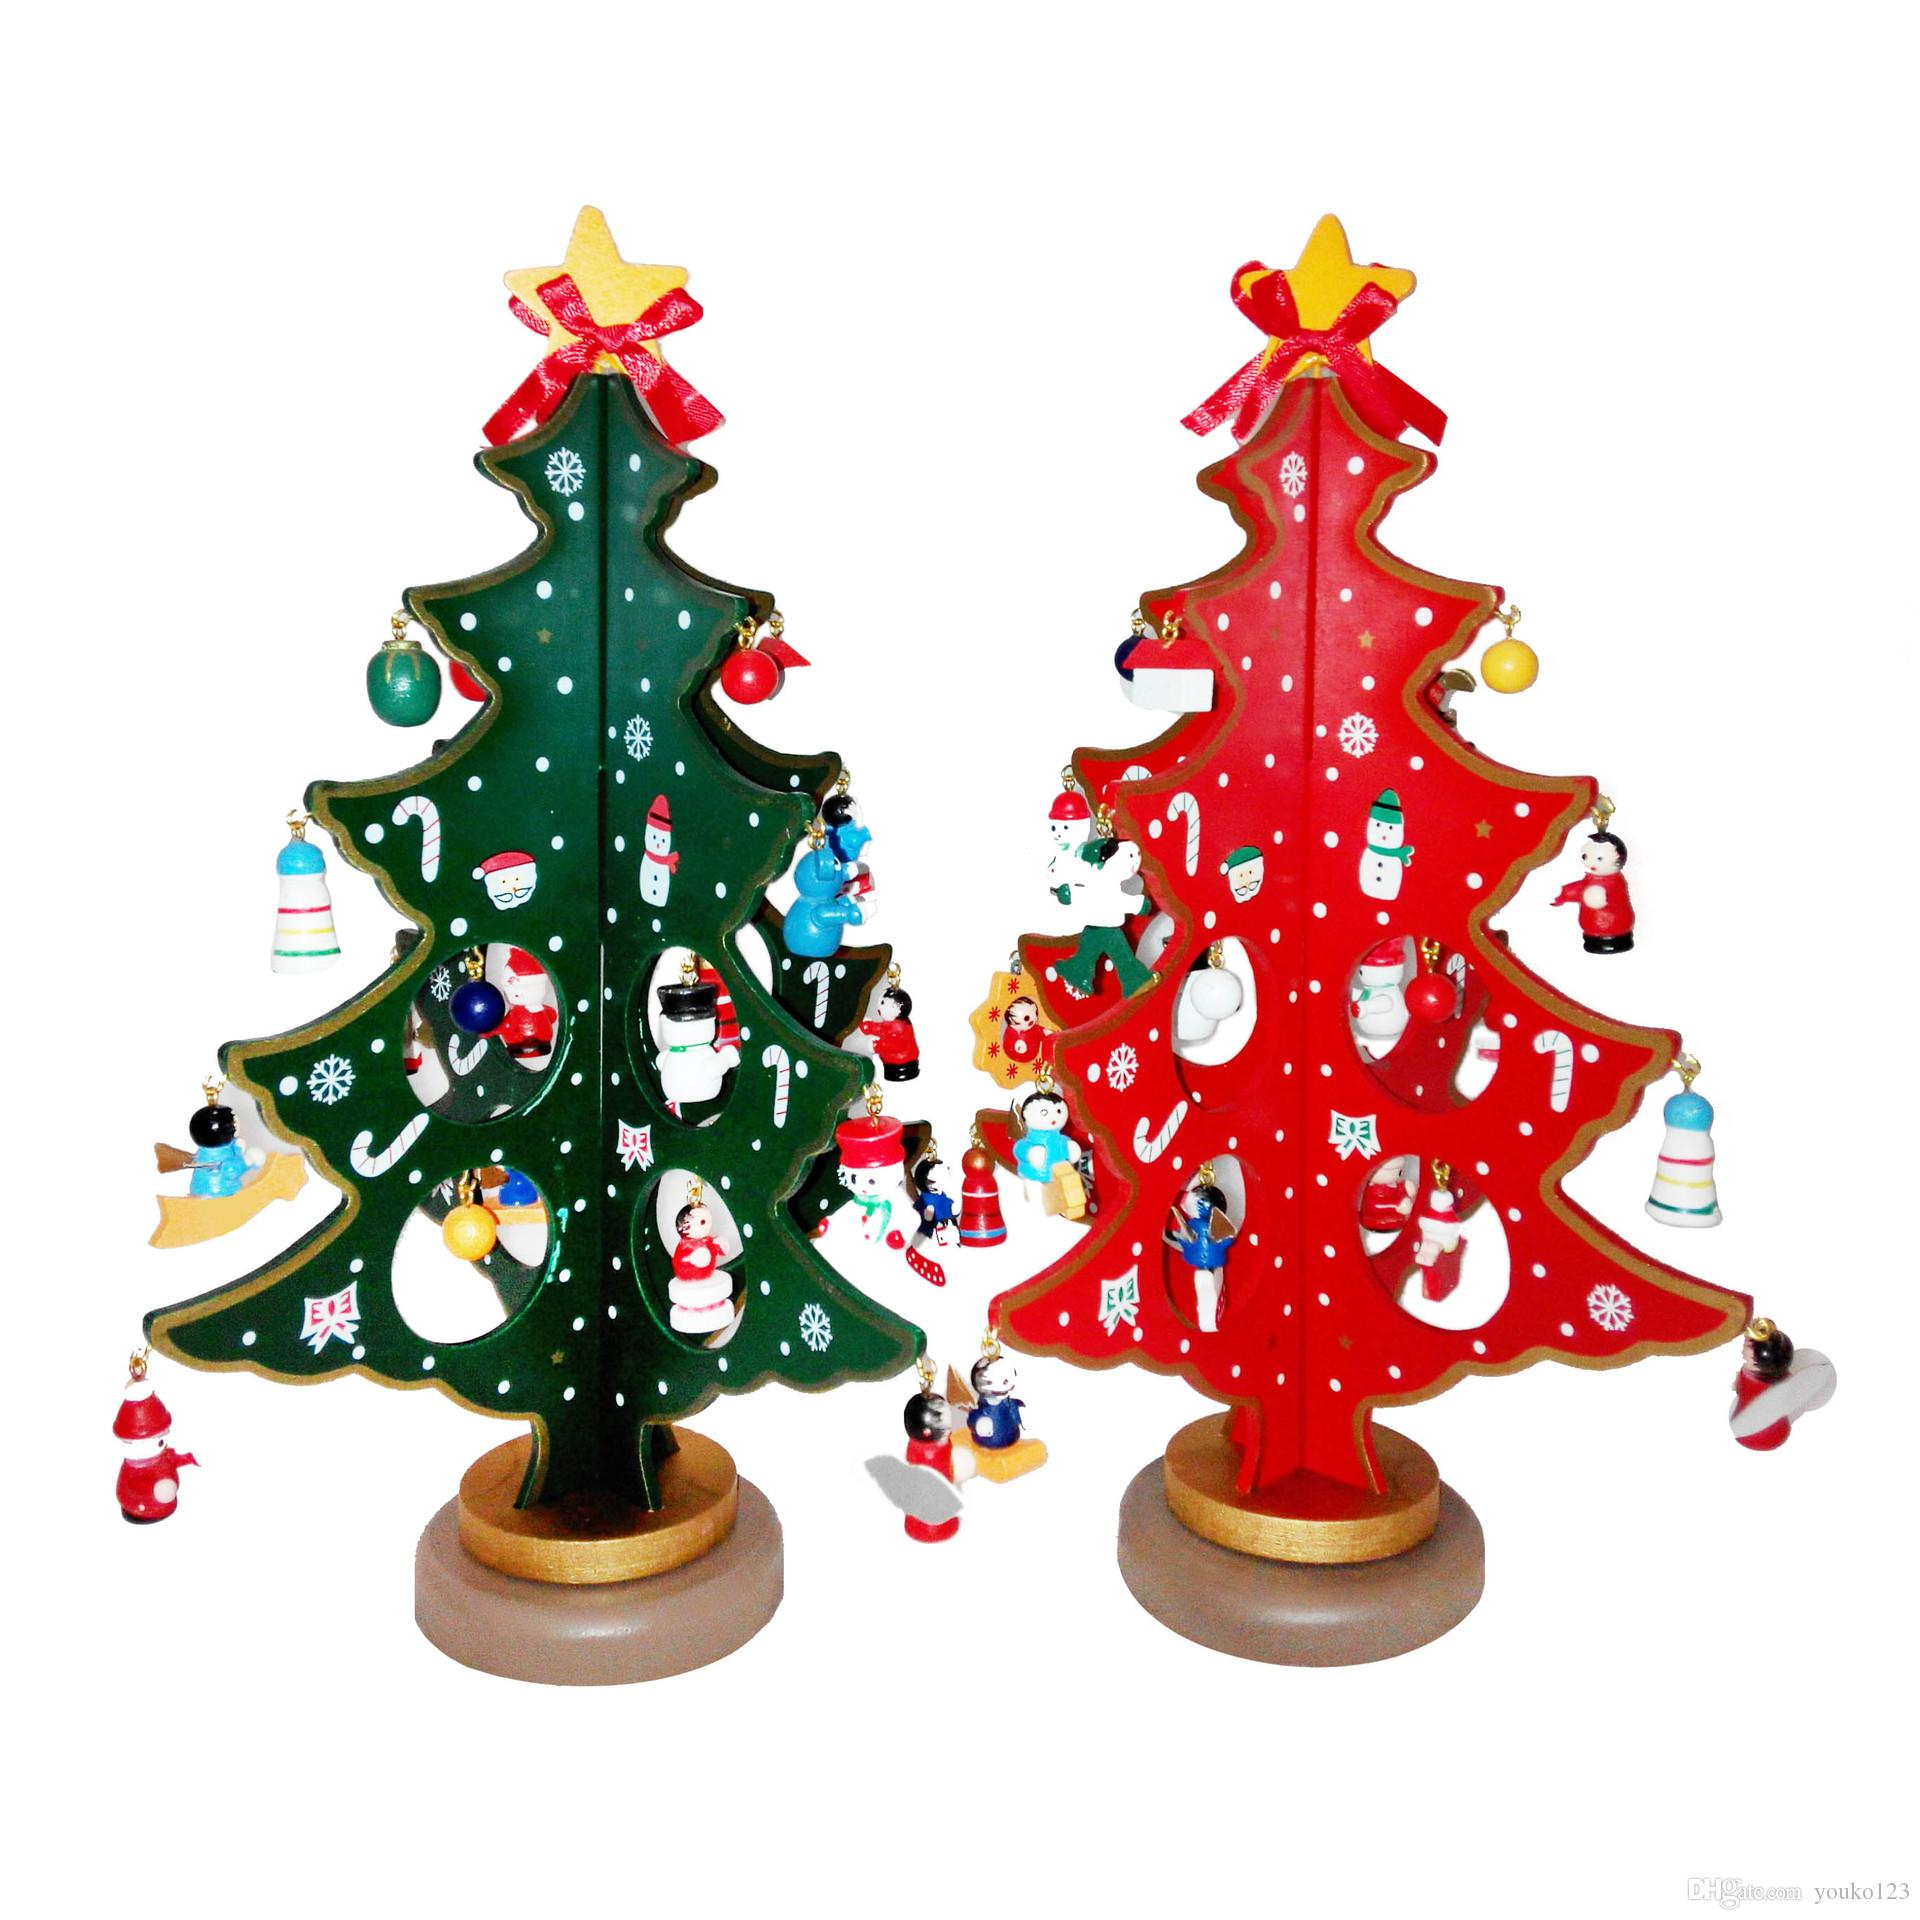 creative christmas ornaments festive gifts handmade wooden christmas tree desktop decoration diy manual assembly gift box buying christmas decorations cheap - Where To Buy Cheap Christmas Decorations